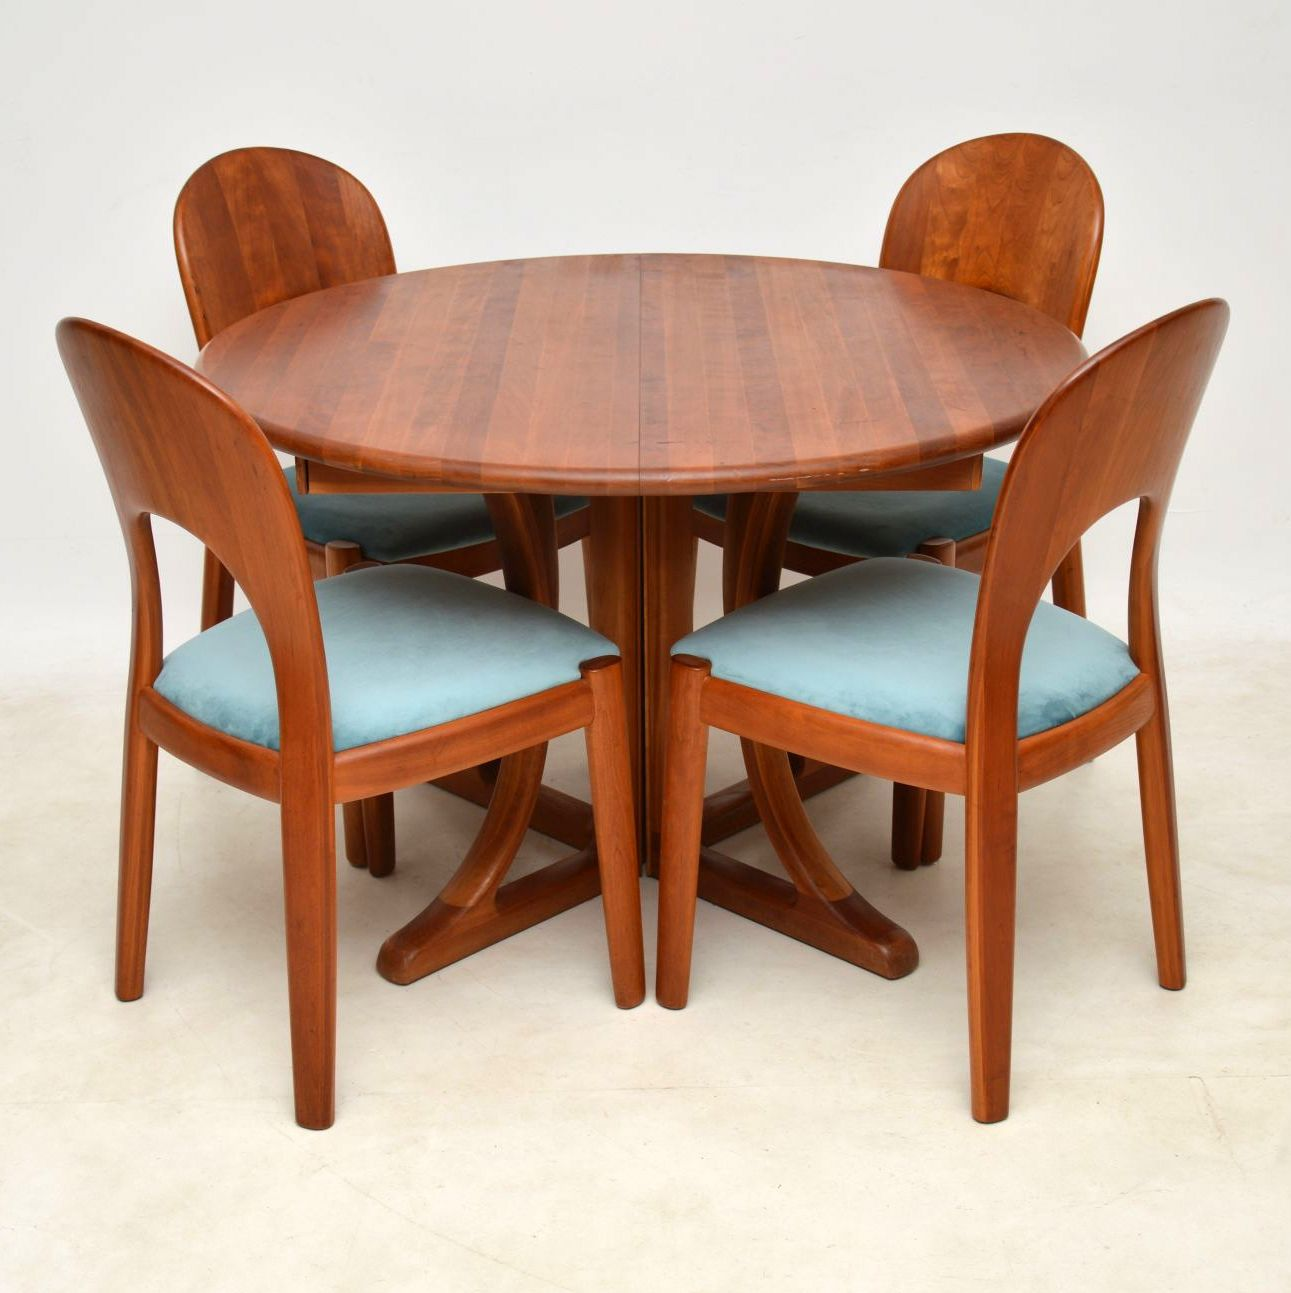 Teak Dining Room Chairs 1960 S Danish Teak Dining Table Chairs By Niels Koefoed